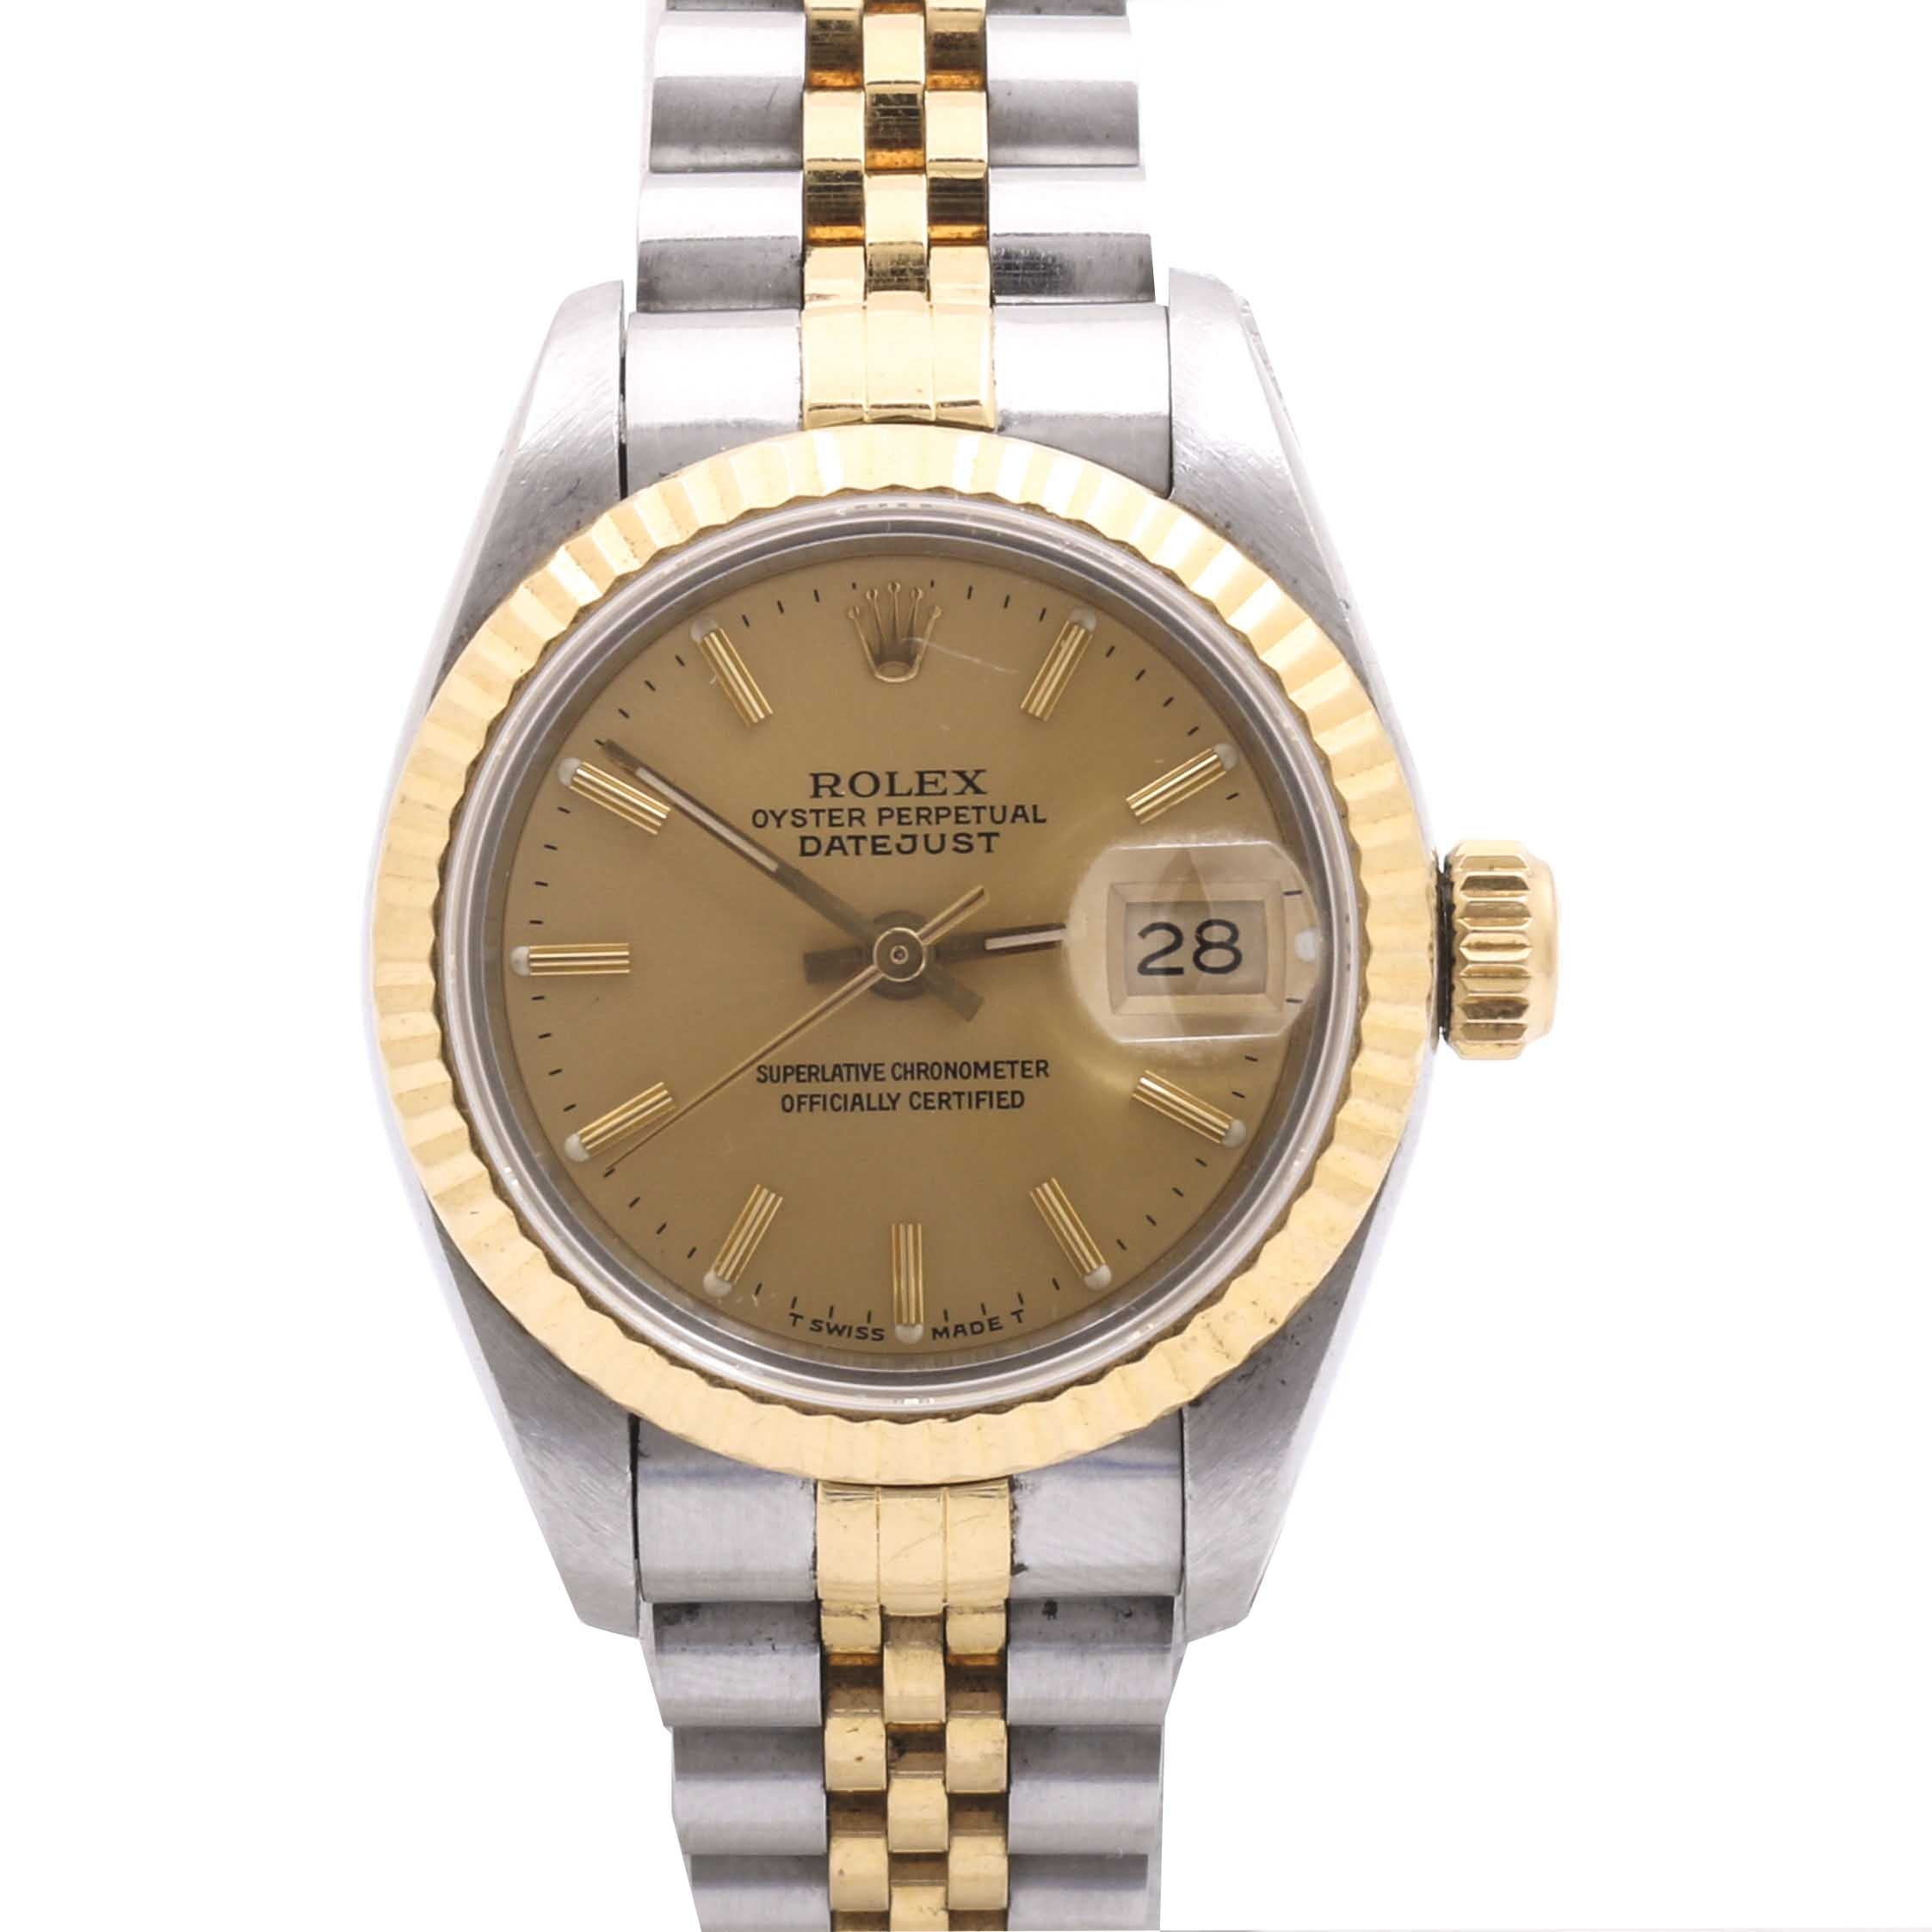 Rolex Oyster Perpetual 18K Yellow Gold and Stainless Steel Wristwatch